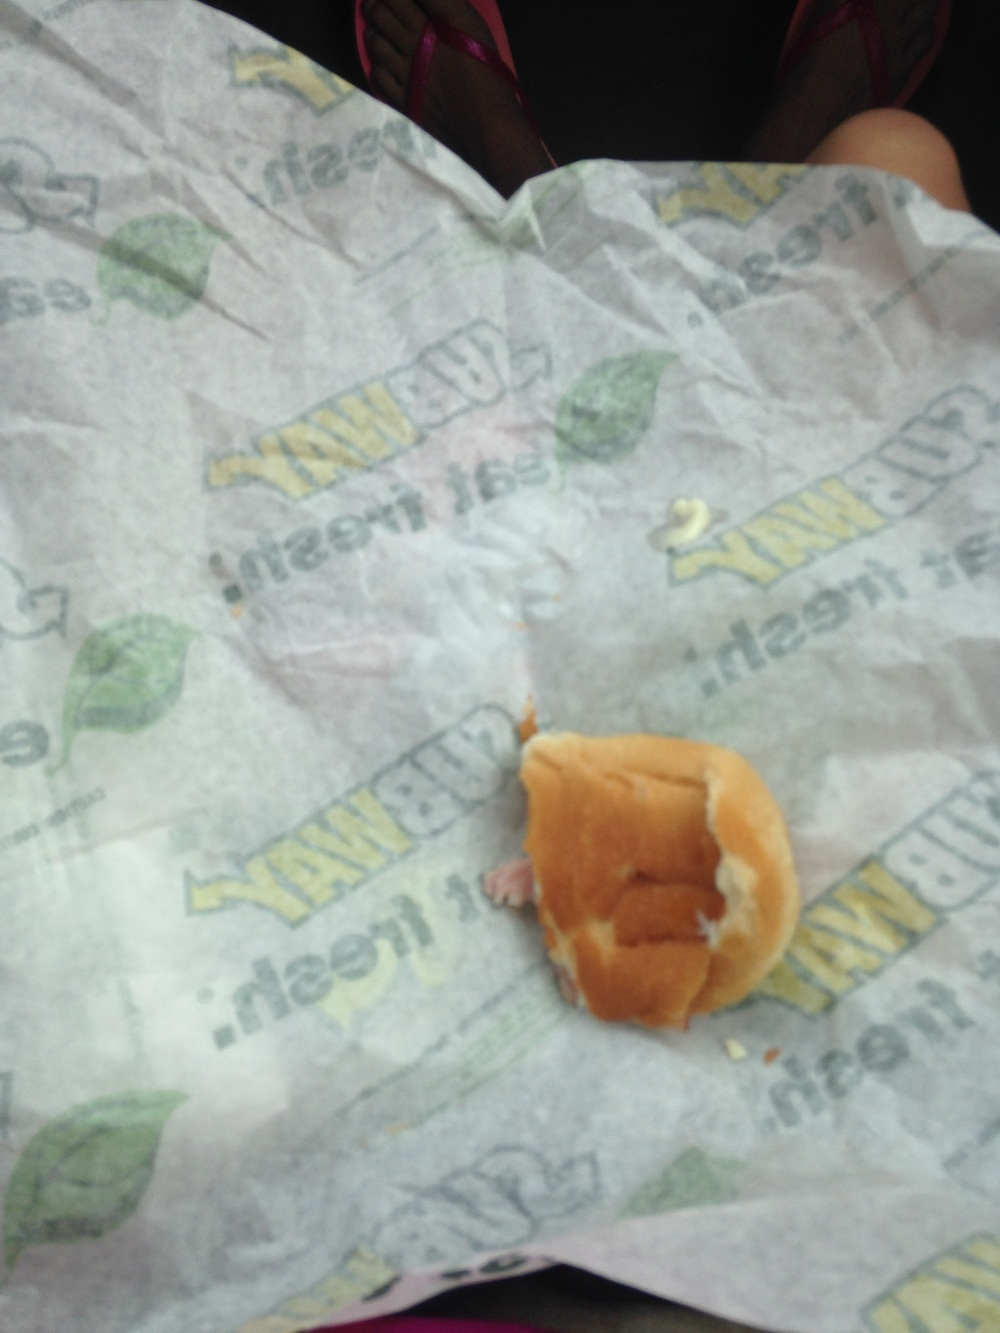 Subway-Sandwich-Photo-Fail.jpg